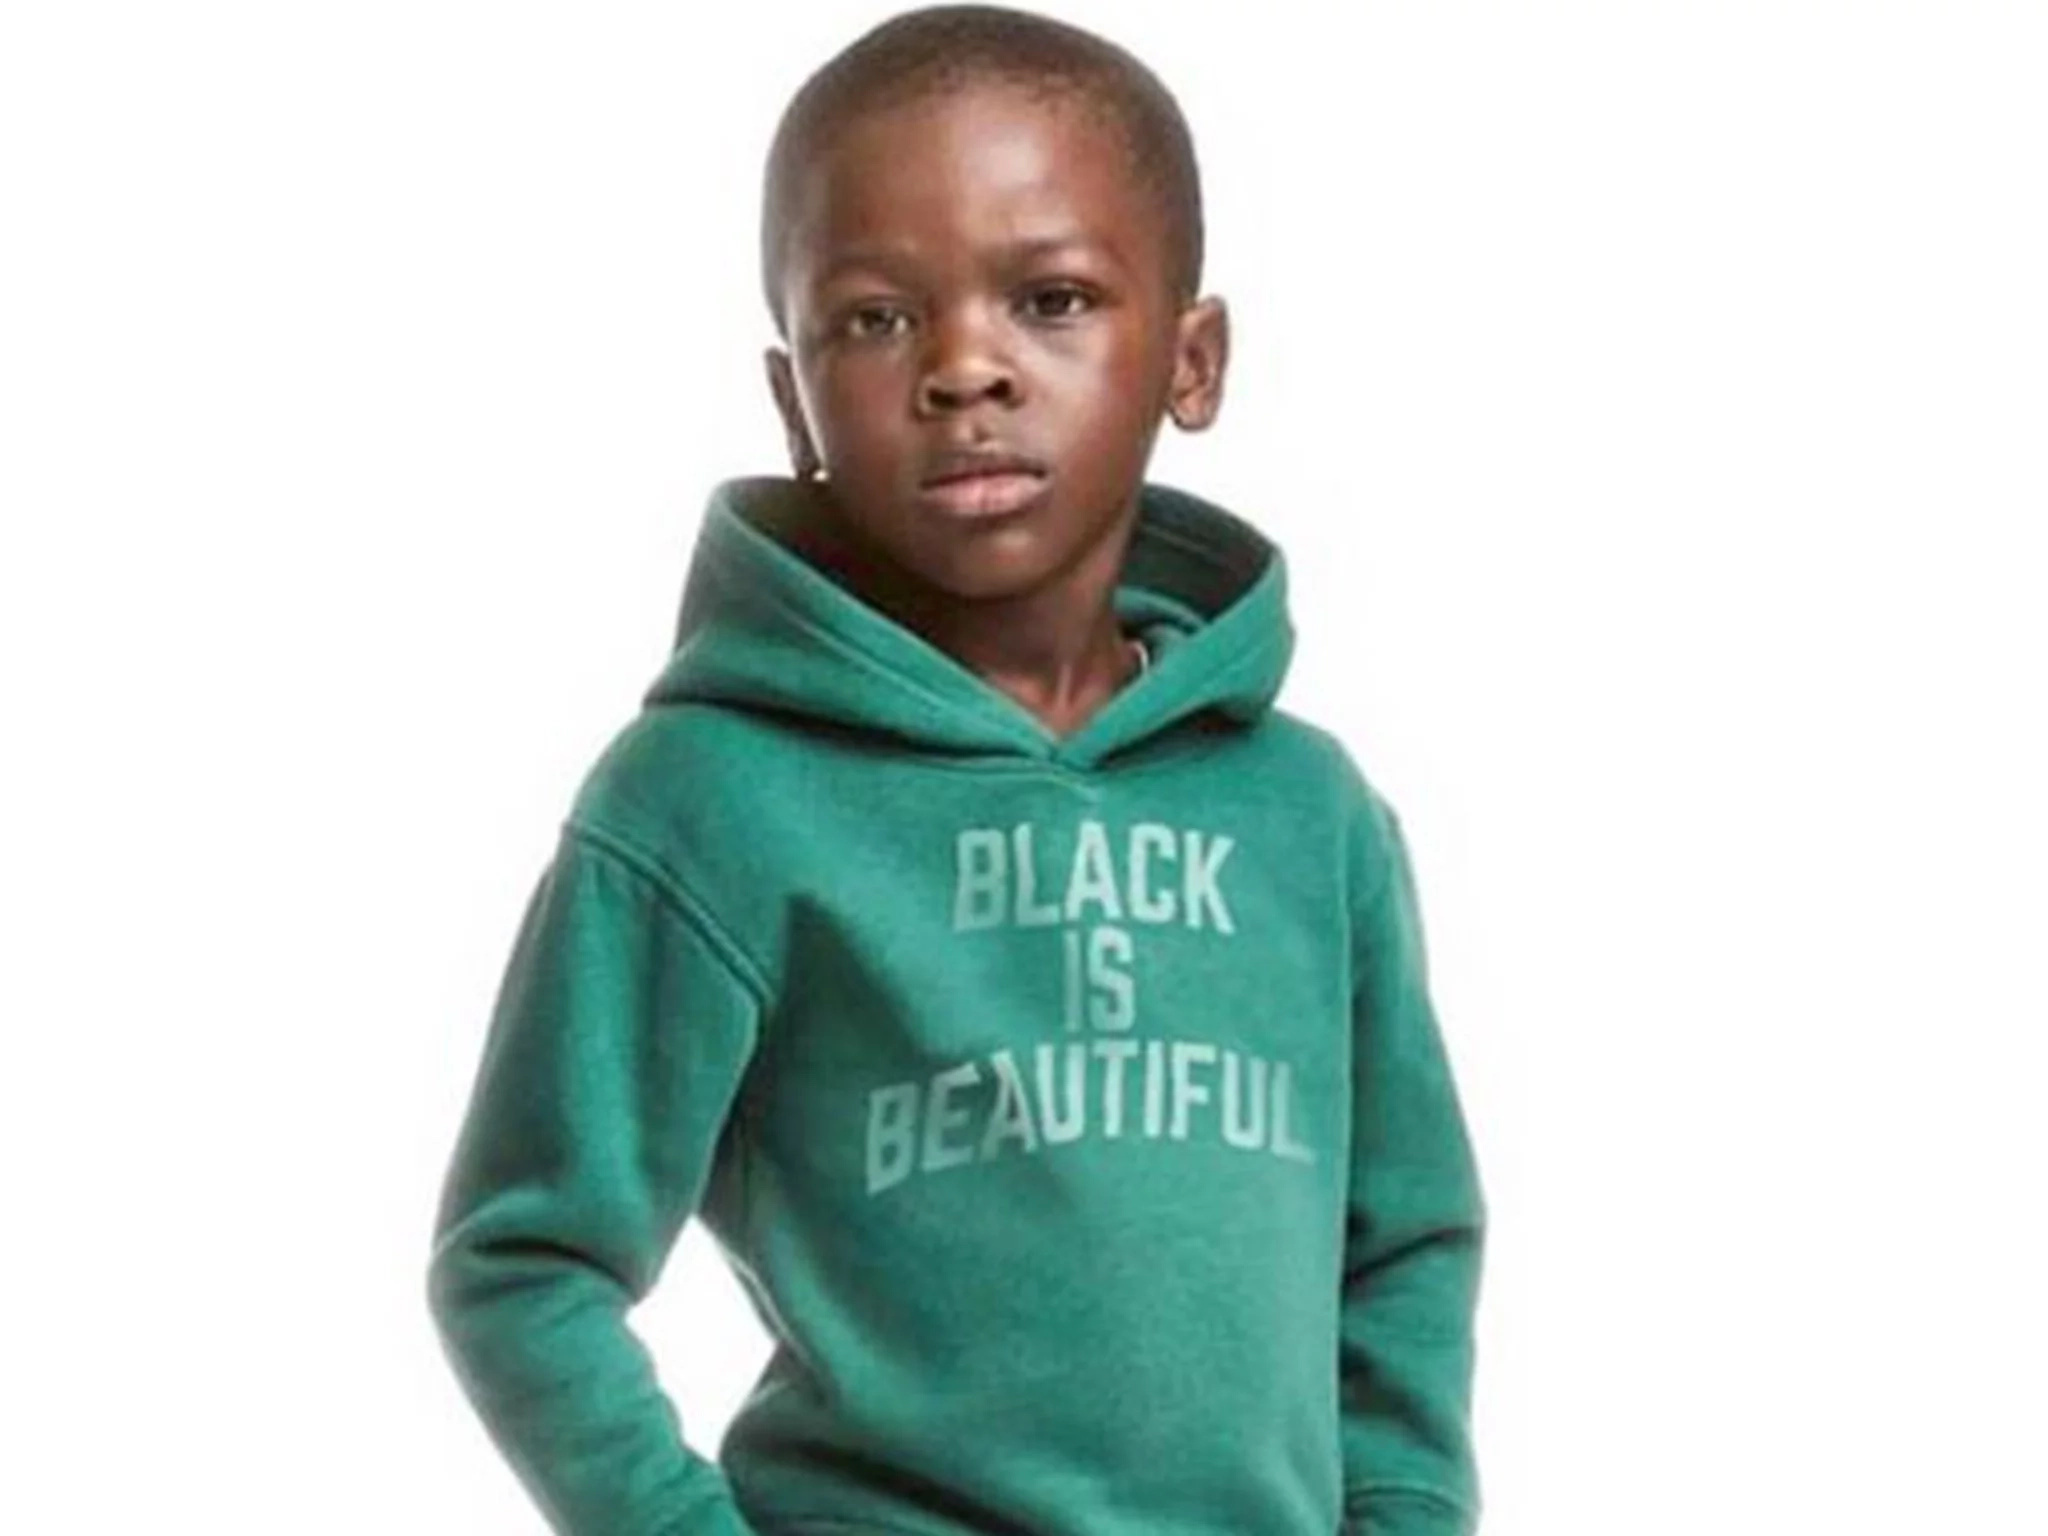 Mother of little boy embroiled in H&M race row speaks out